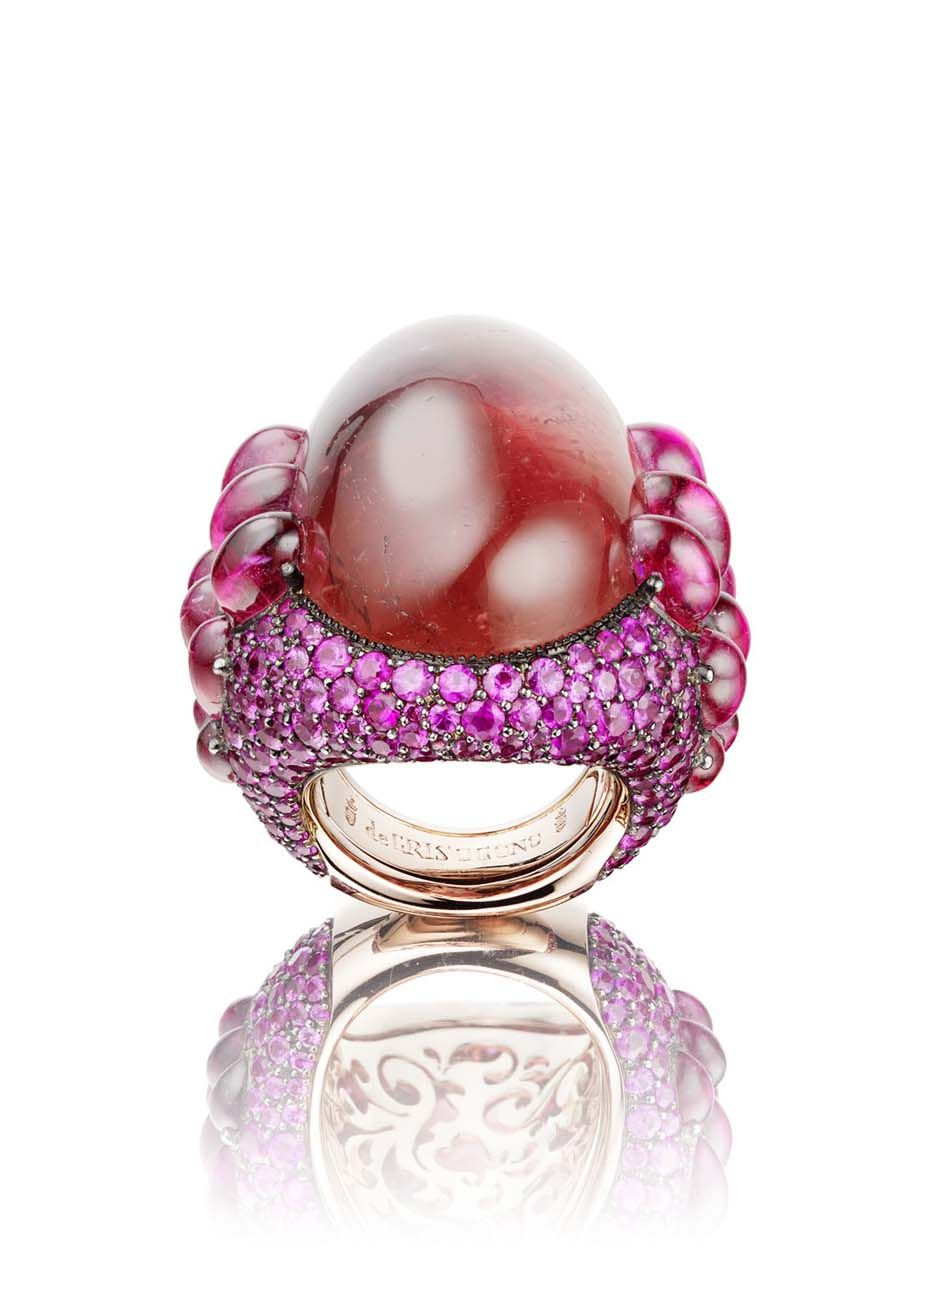 Unwrap a Christmas Cracker Bonbon from Ritz Fine Jewellery this ...